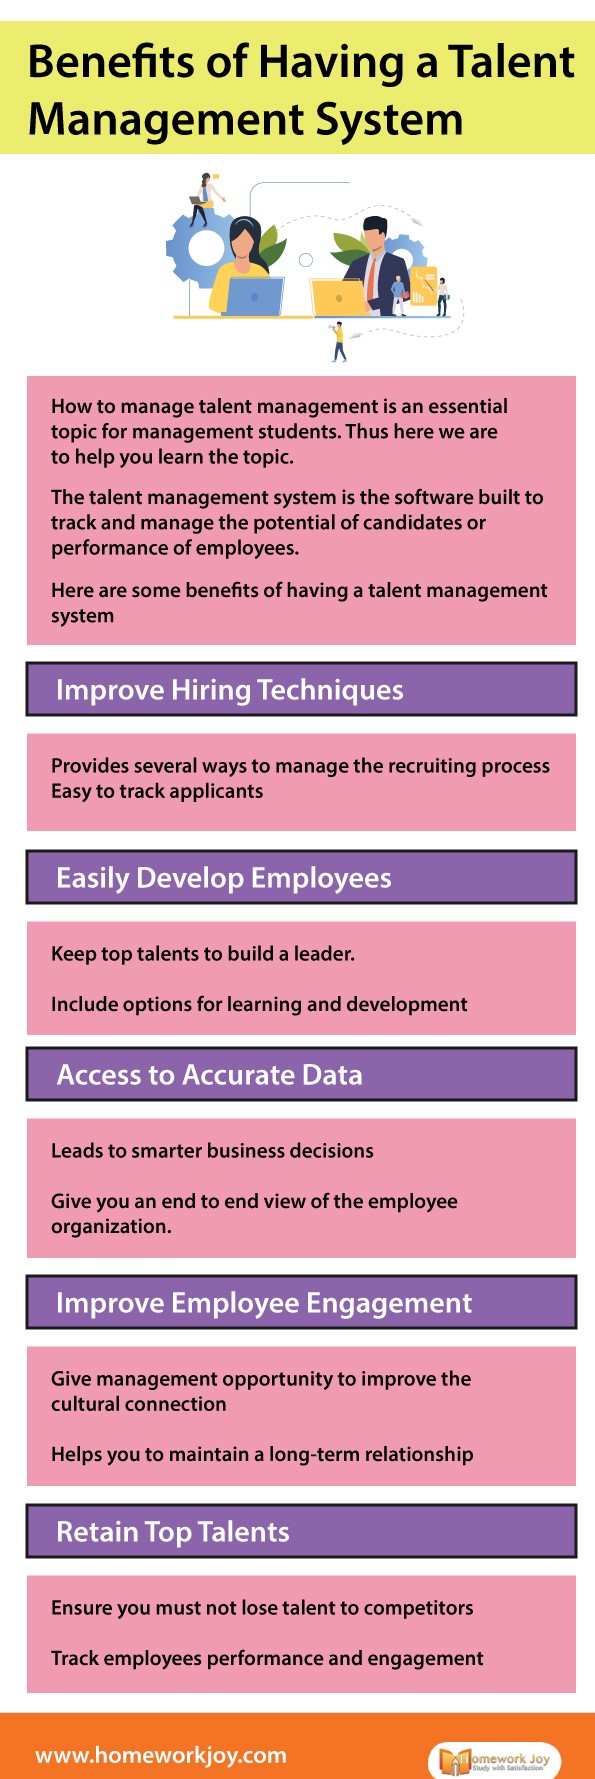 Benefits of Having a Talent Management System